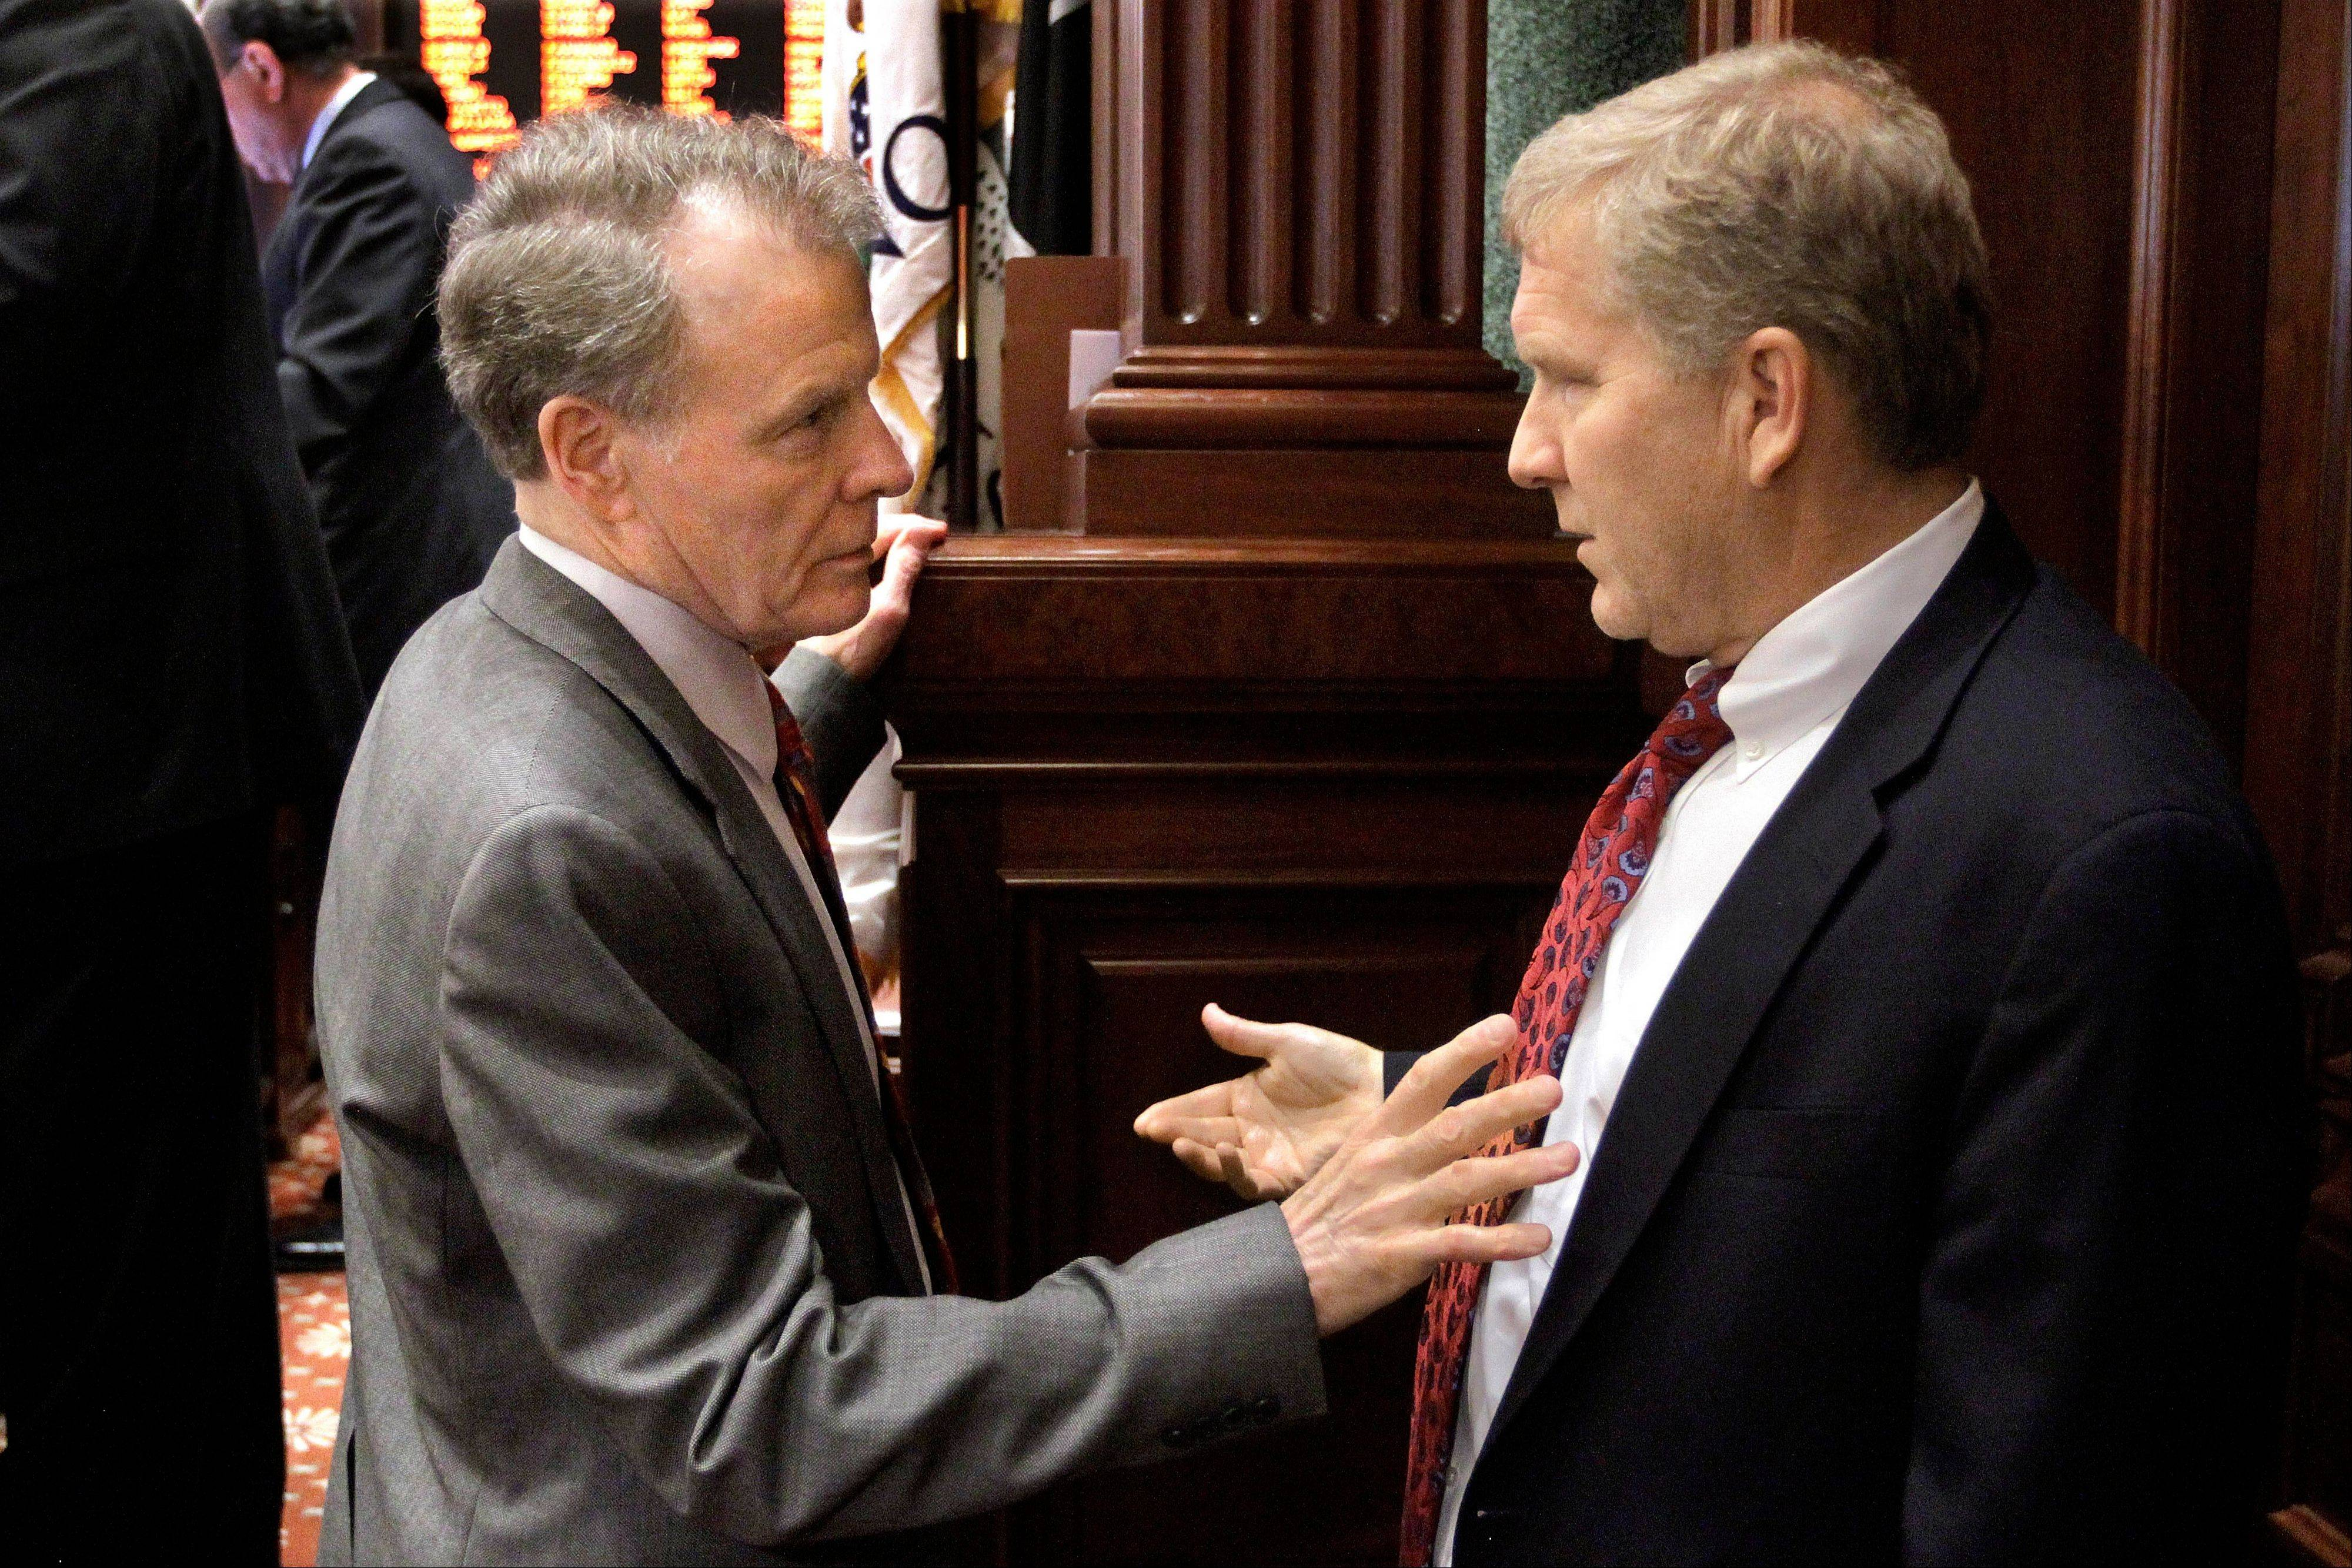 Illinois Speaker of the House Michael Madigan, left, speaks with Illinois House Minority Leader Tom Cross on the House floor during session at the Illinois State Capitol last May.